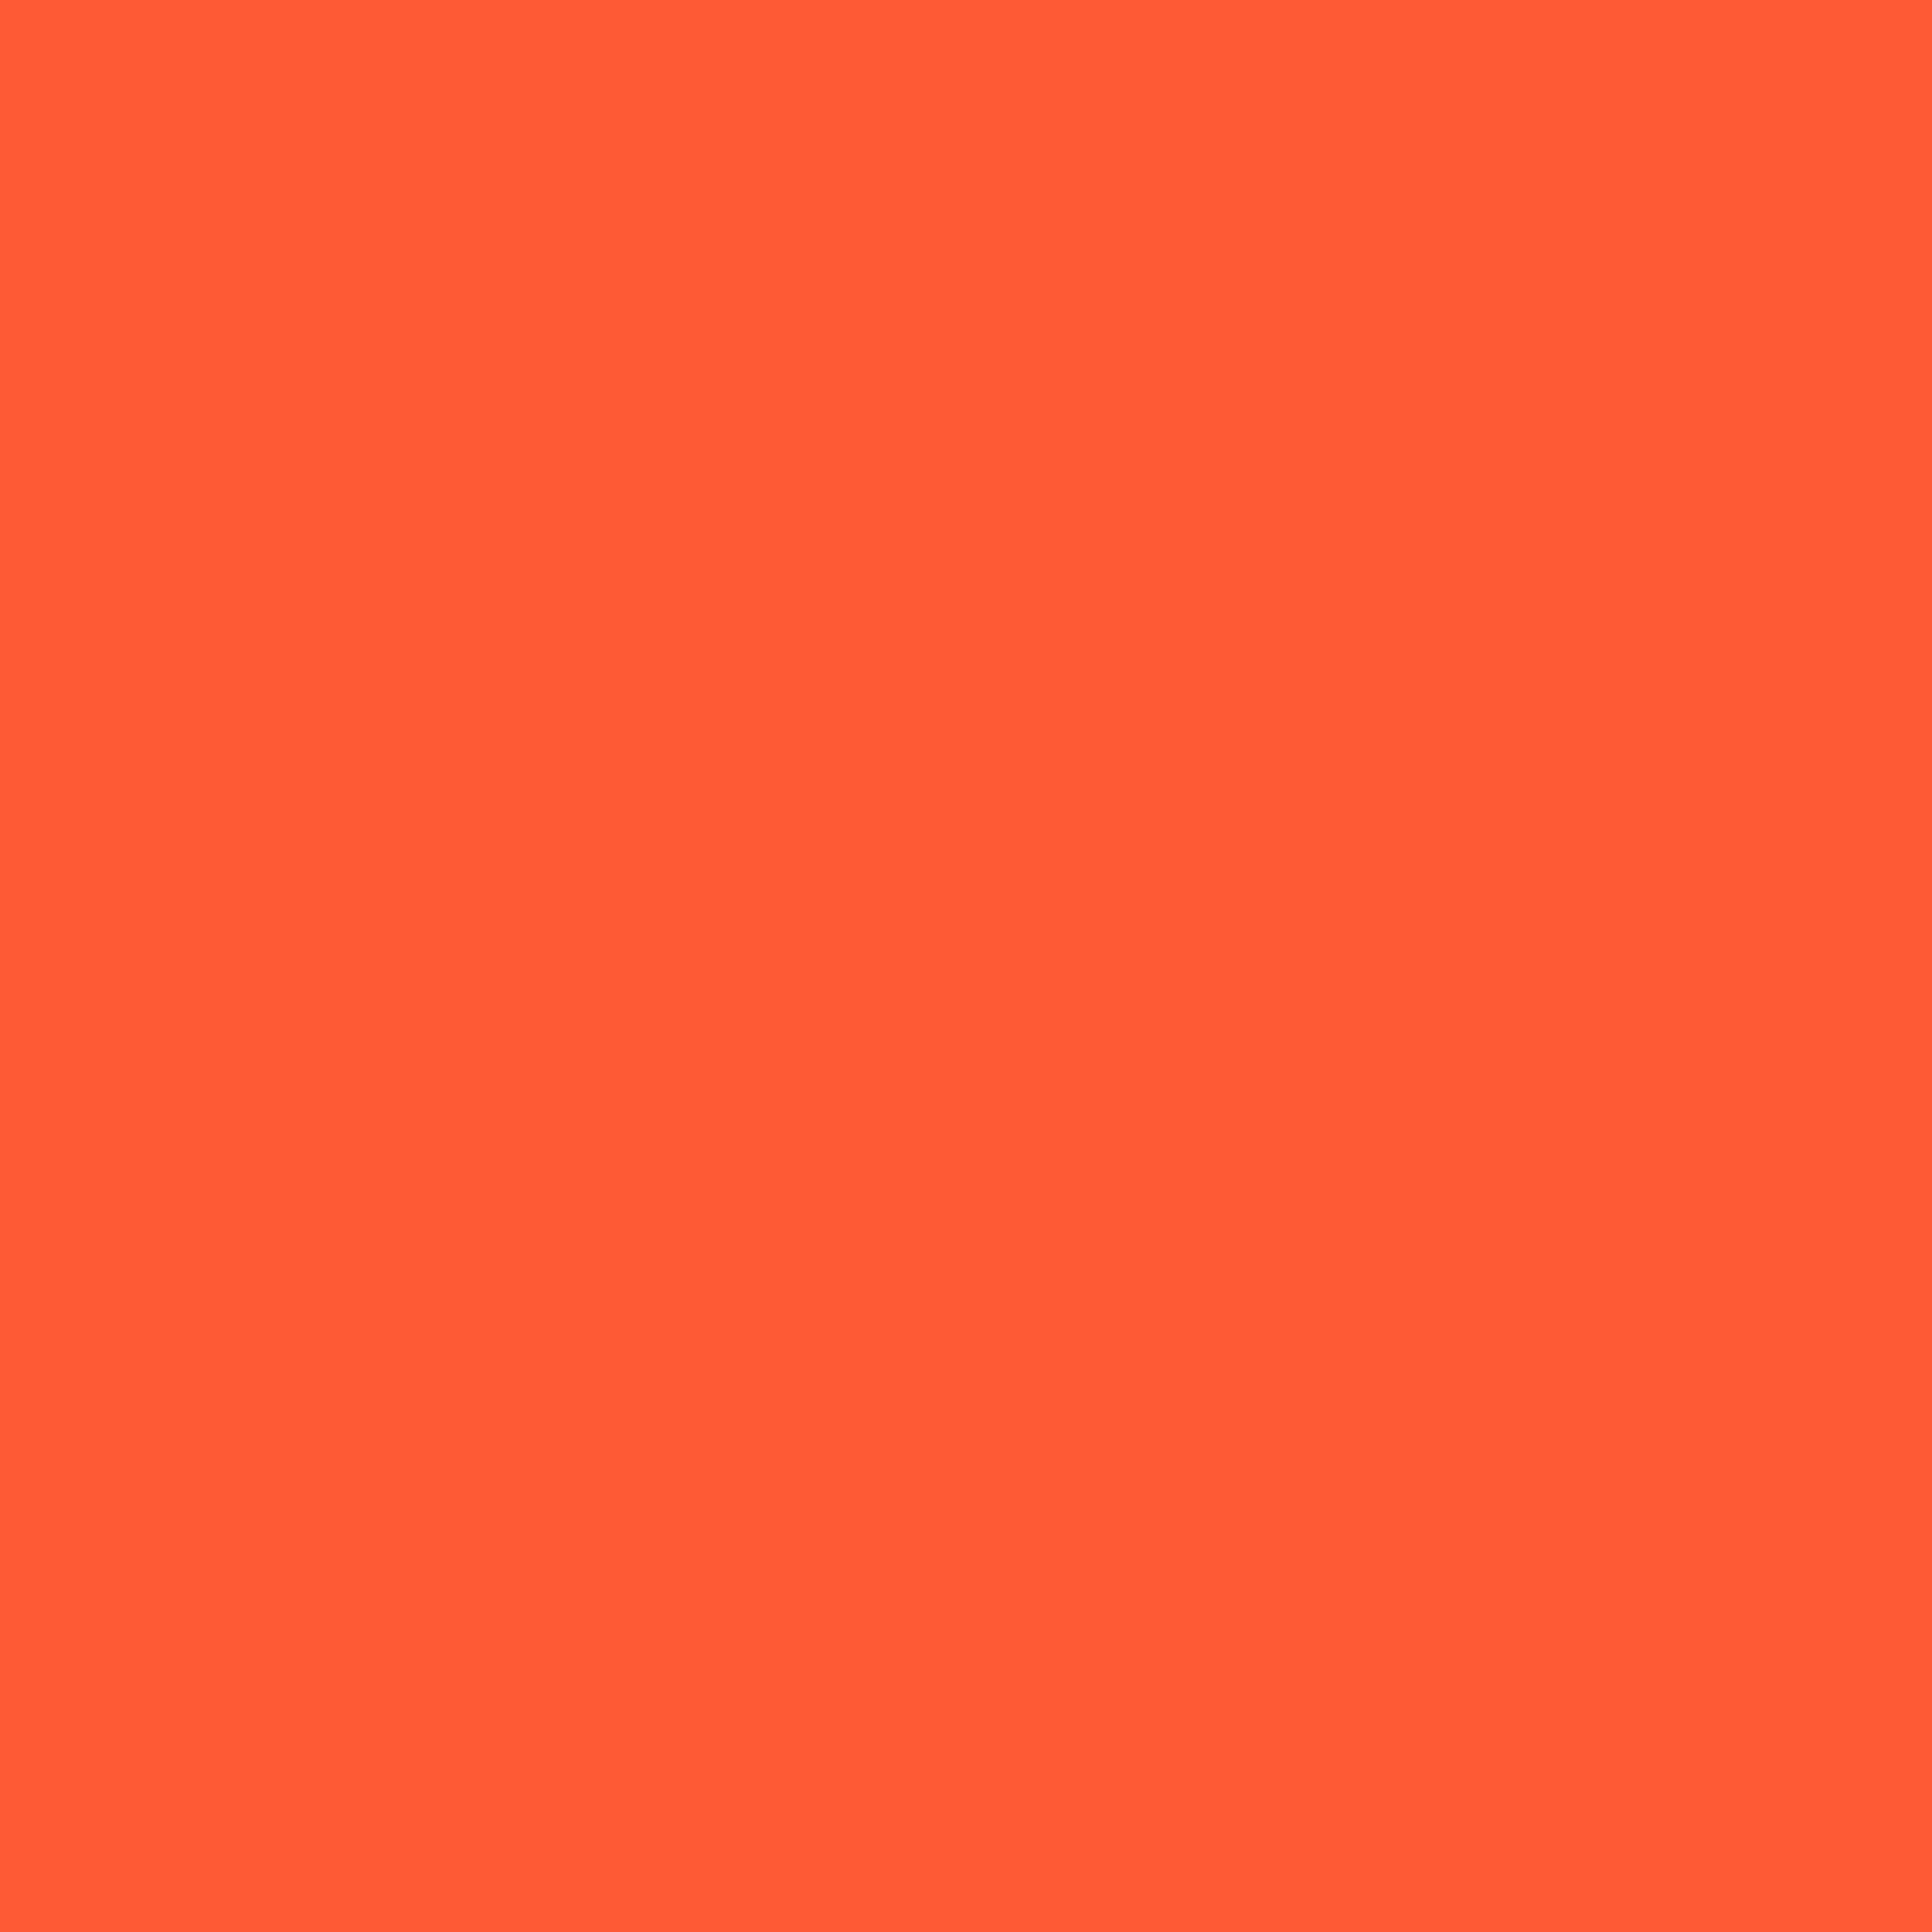 2732x2732 Portland Orange Solid Color Background